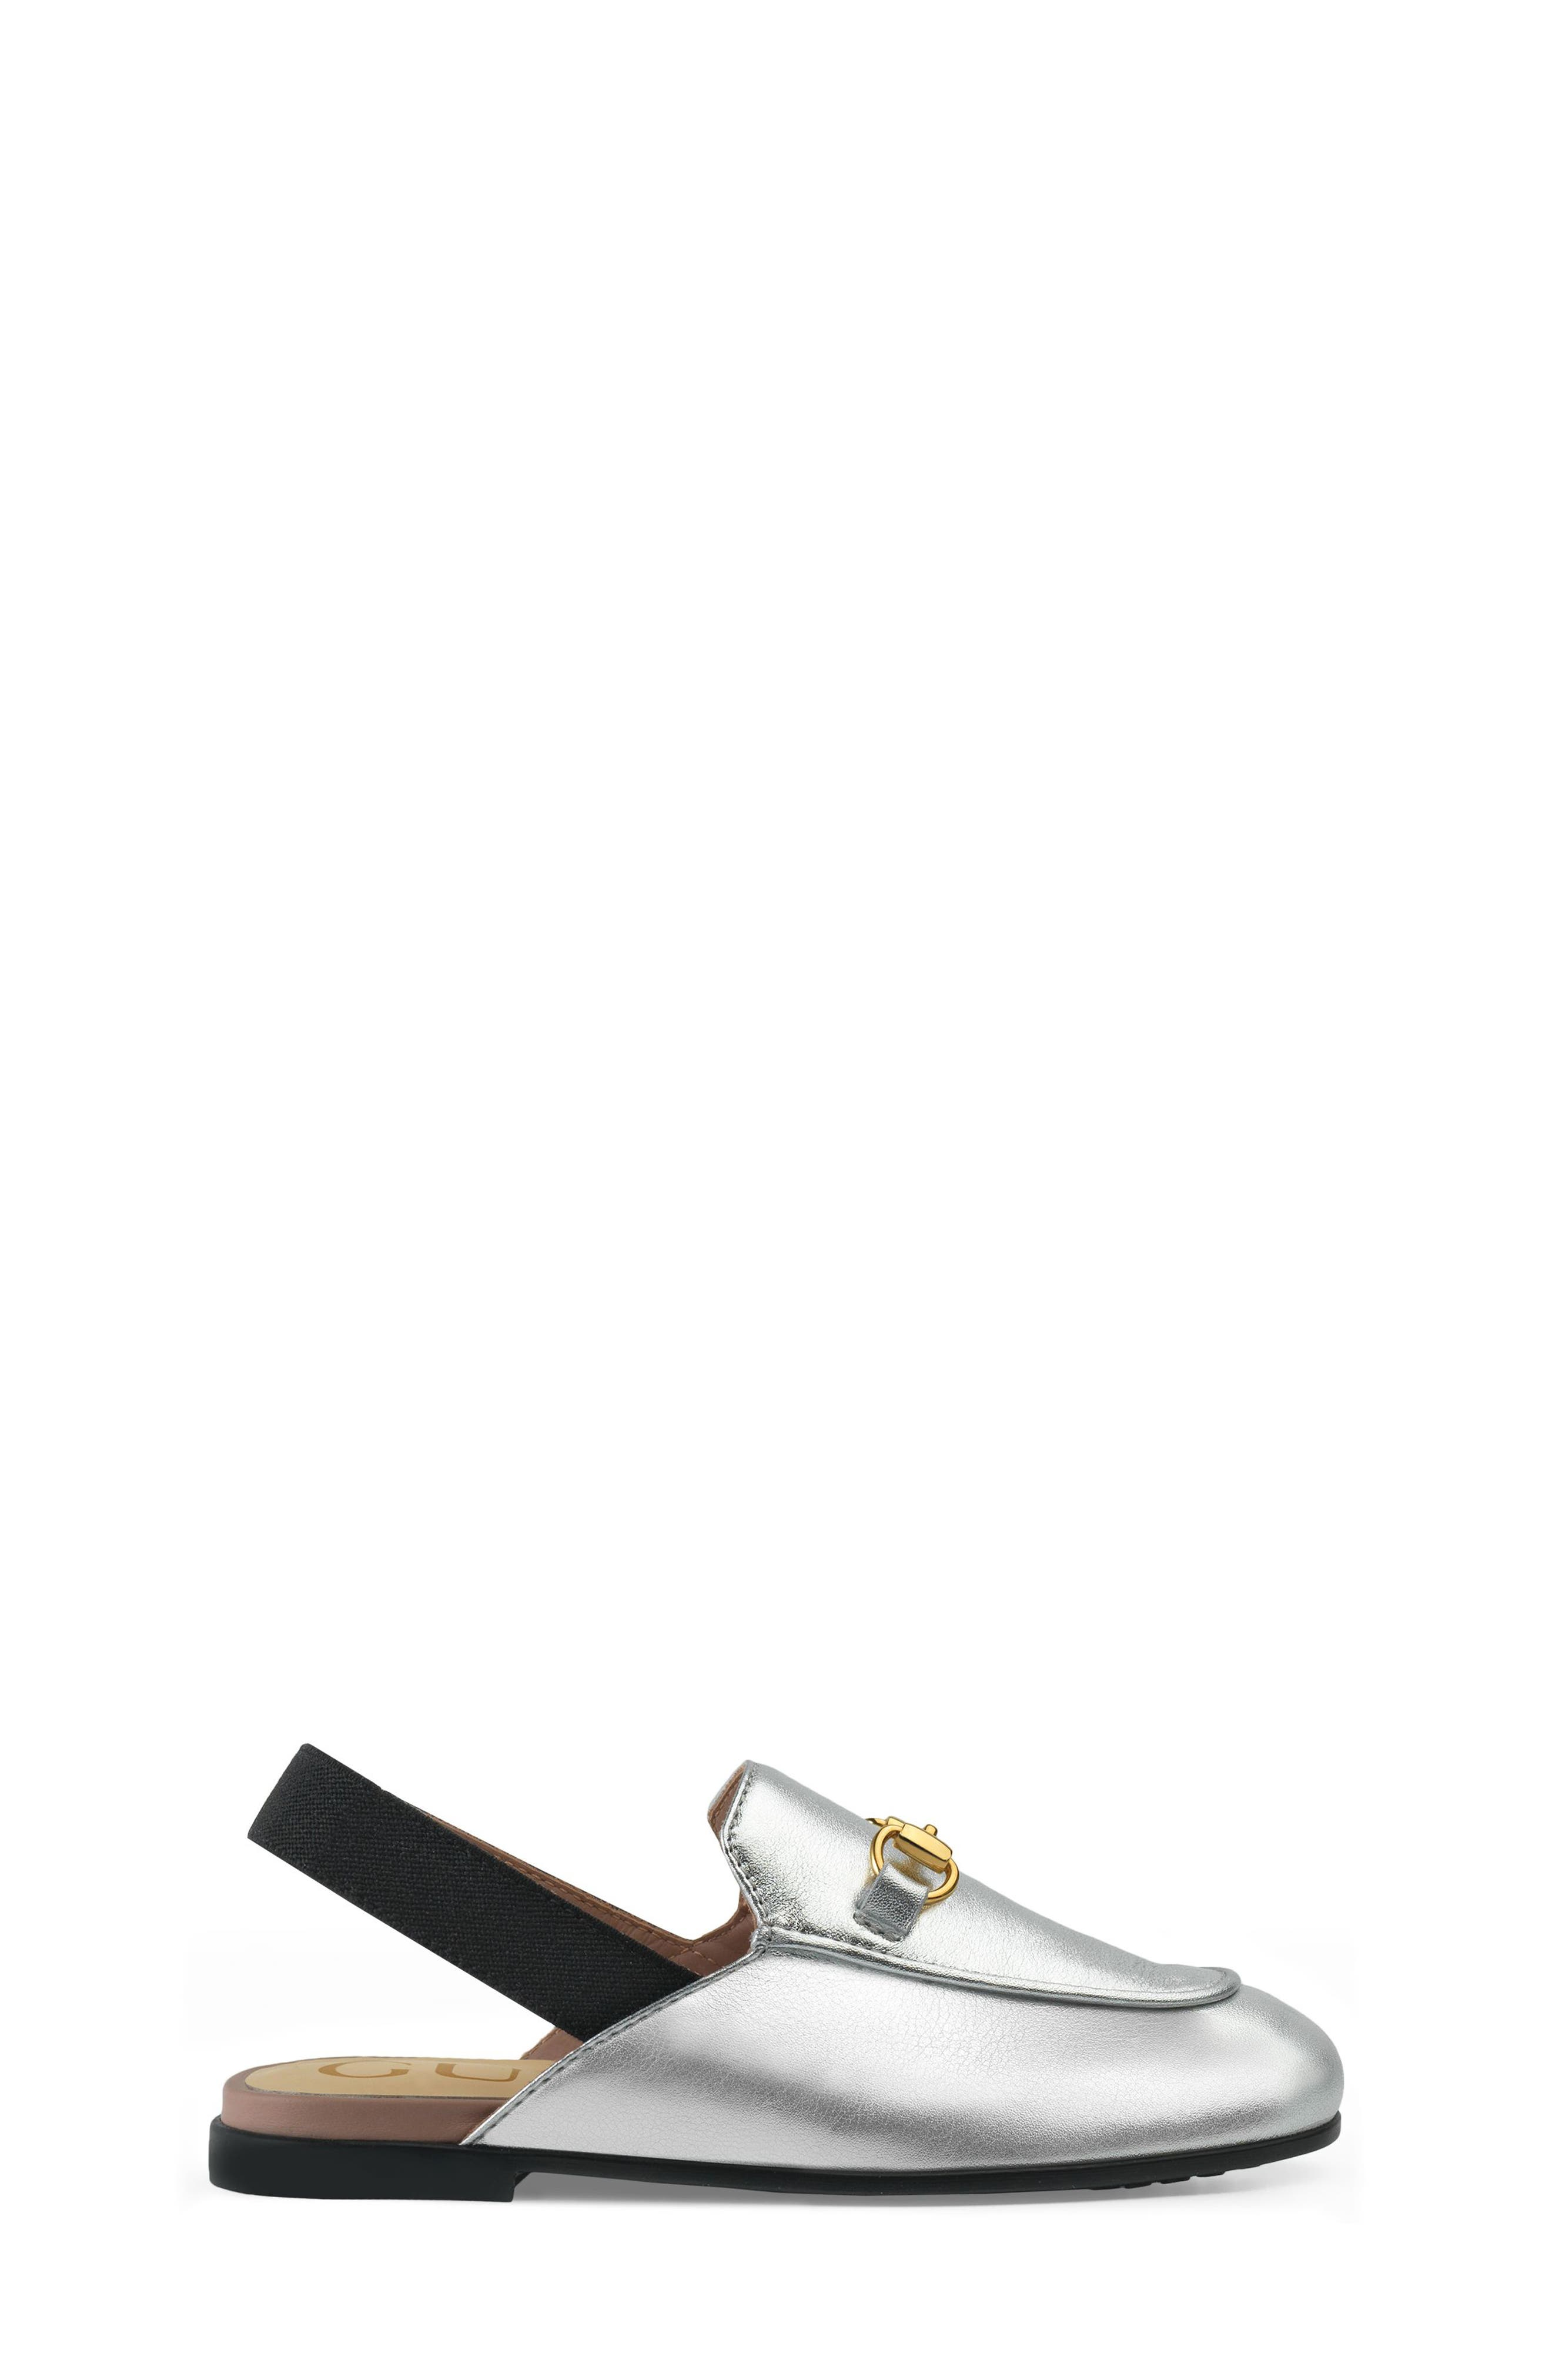 GUCCI, Princetown Loafer Mule, Alternate thumbnail 3, color, SILVER/ BLACK